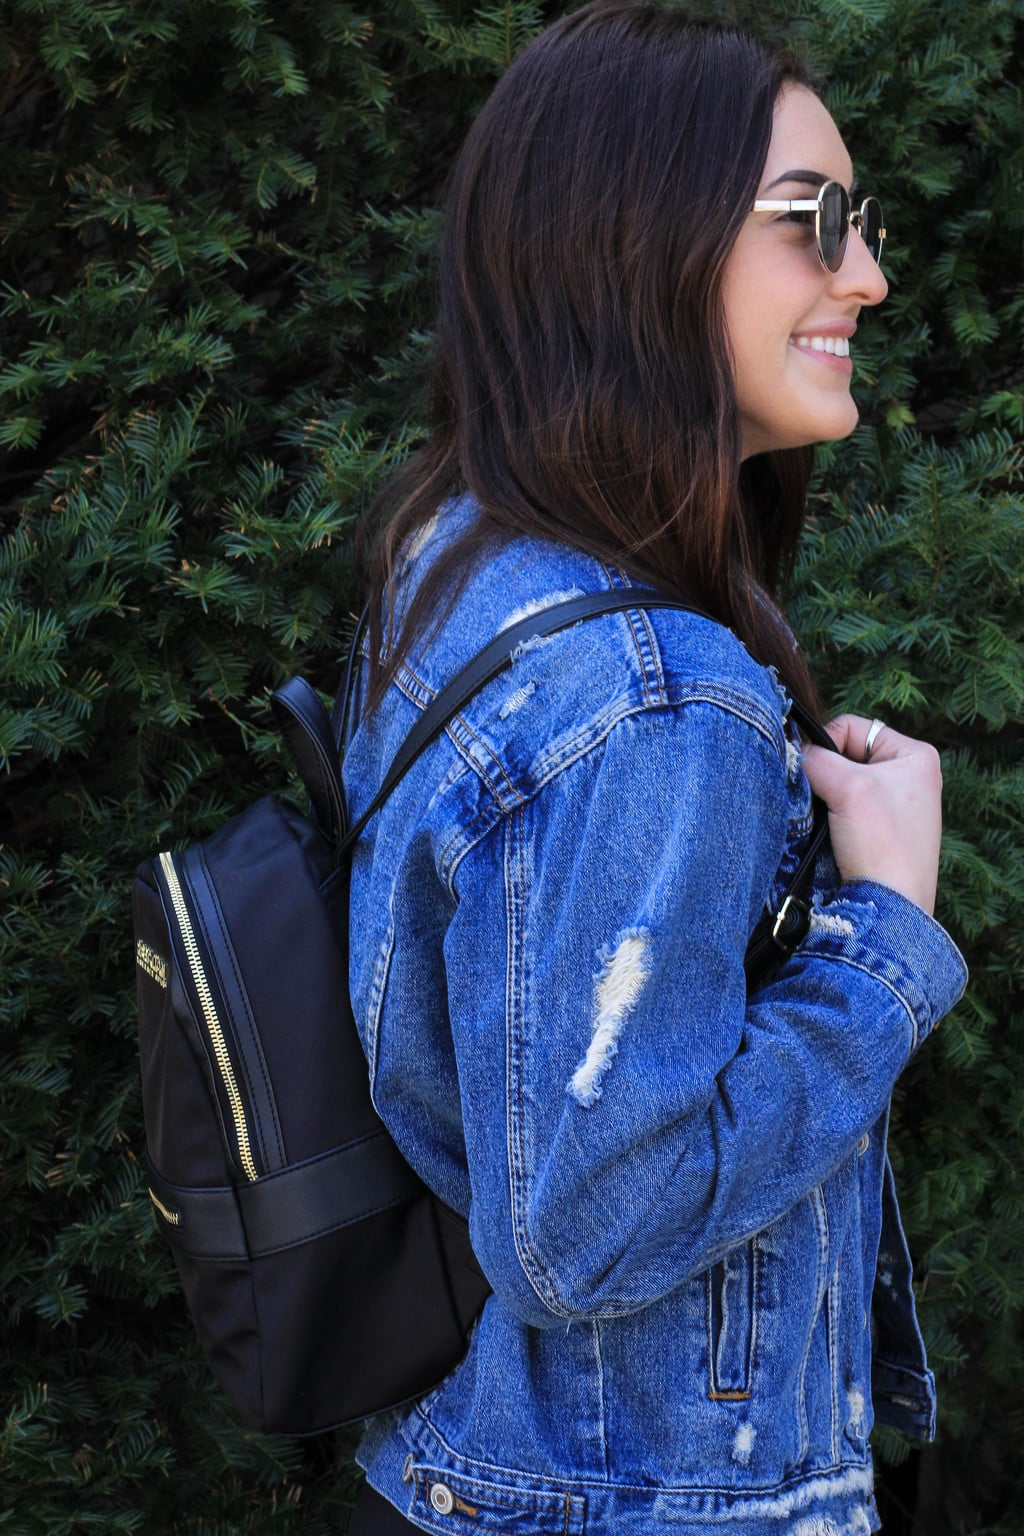 Bailey's black mini backpack with gold zippers and details carries everything she needs around campus.